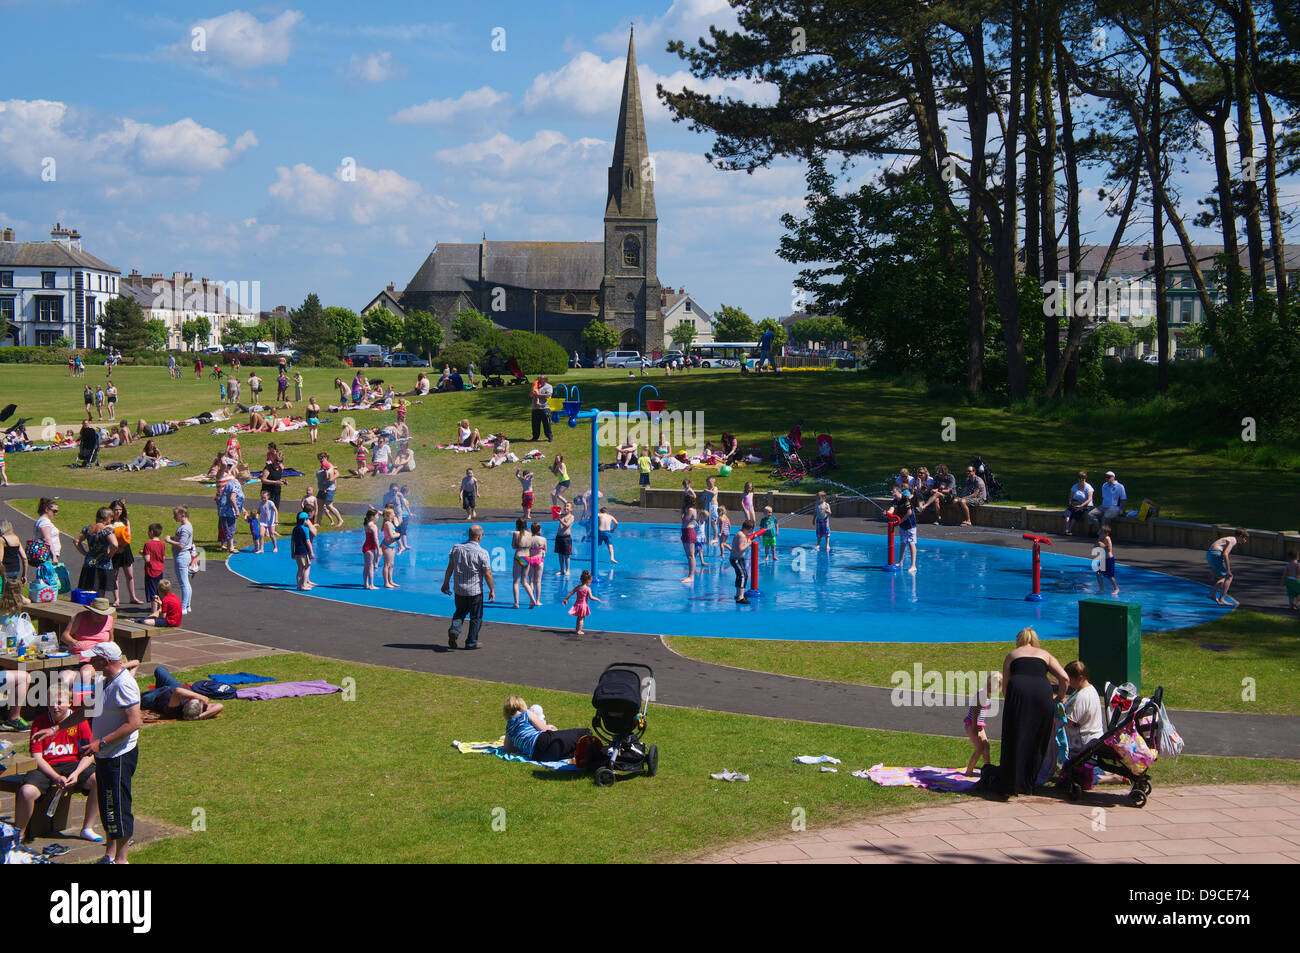 Families enjoying the summer at Silloth paddling pool on the green with Christ Church in the distance Cumbria England - Stock Image